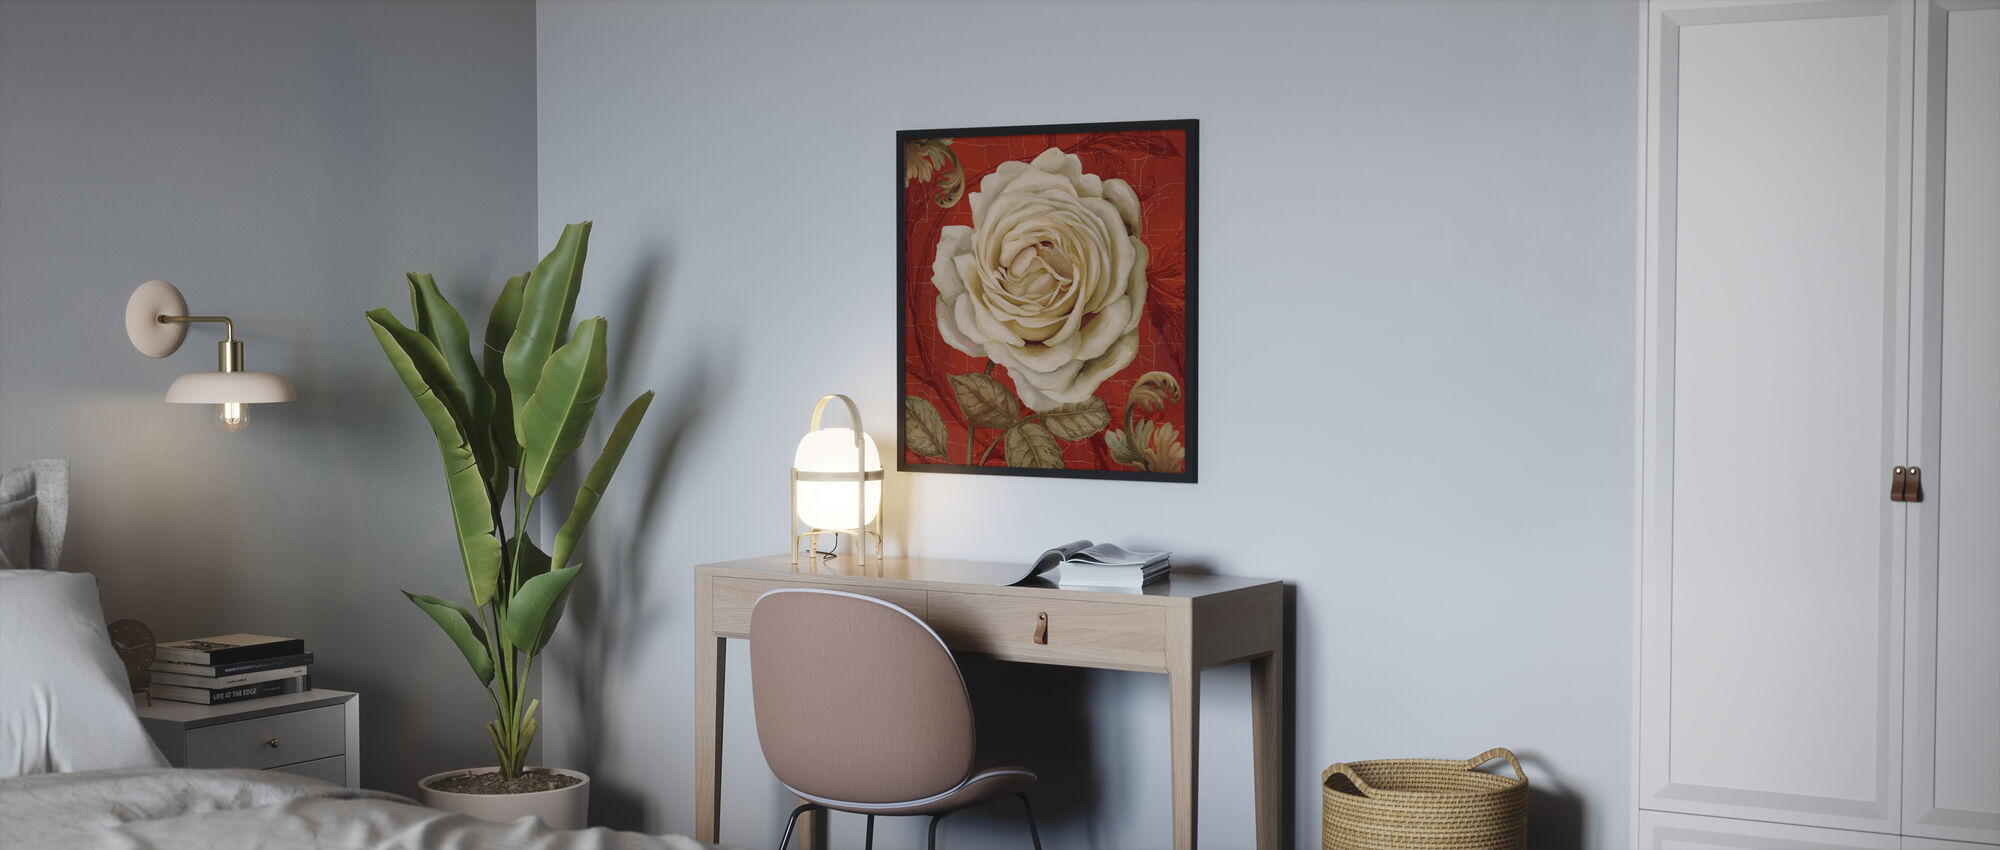 Red Bourgeoisie 2 - Poster - Bedroom